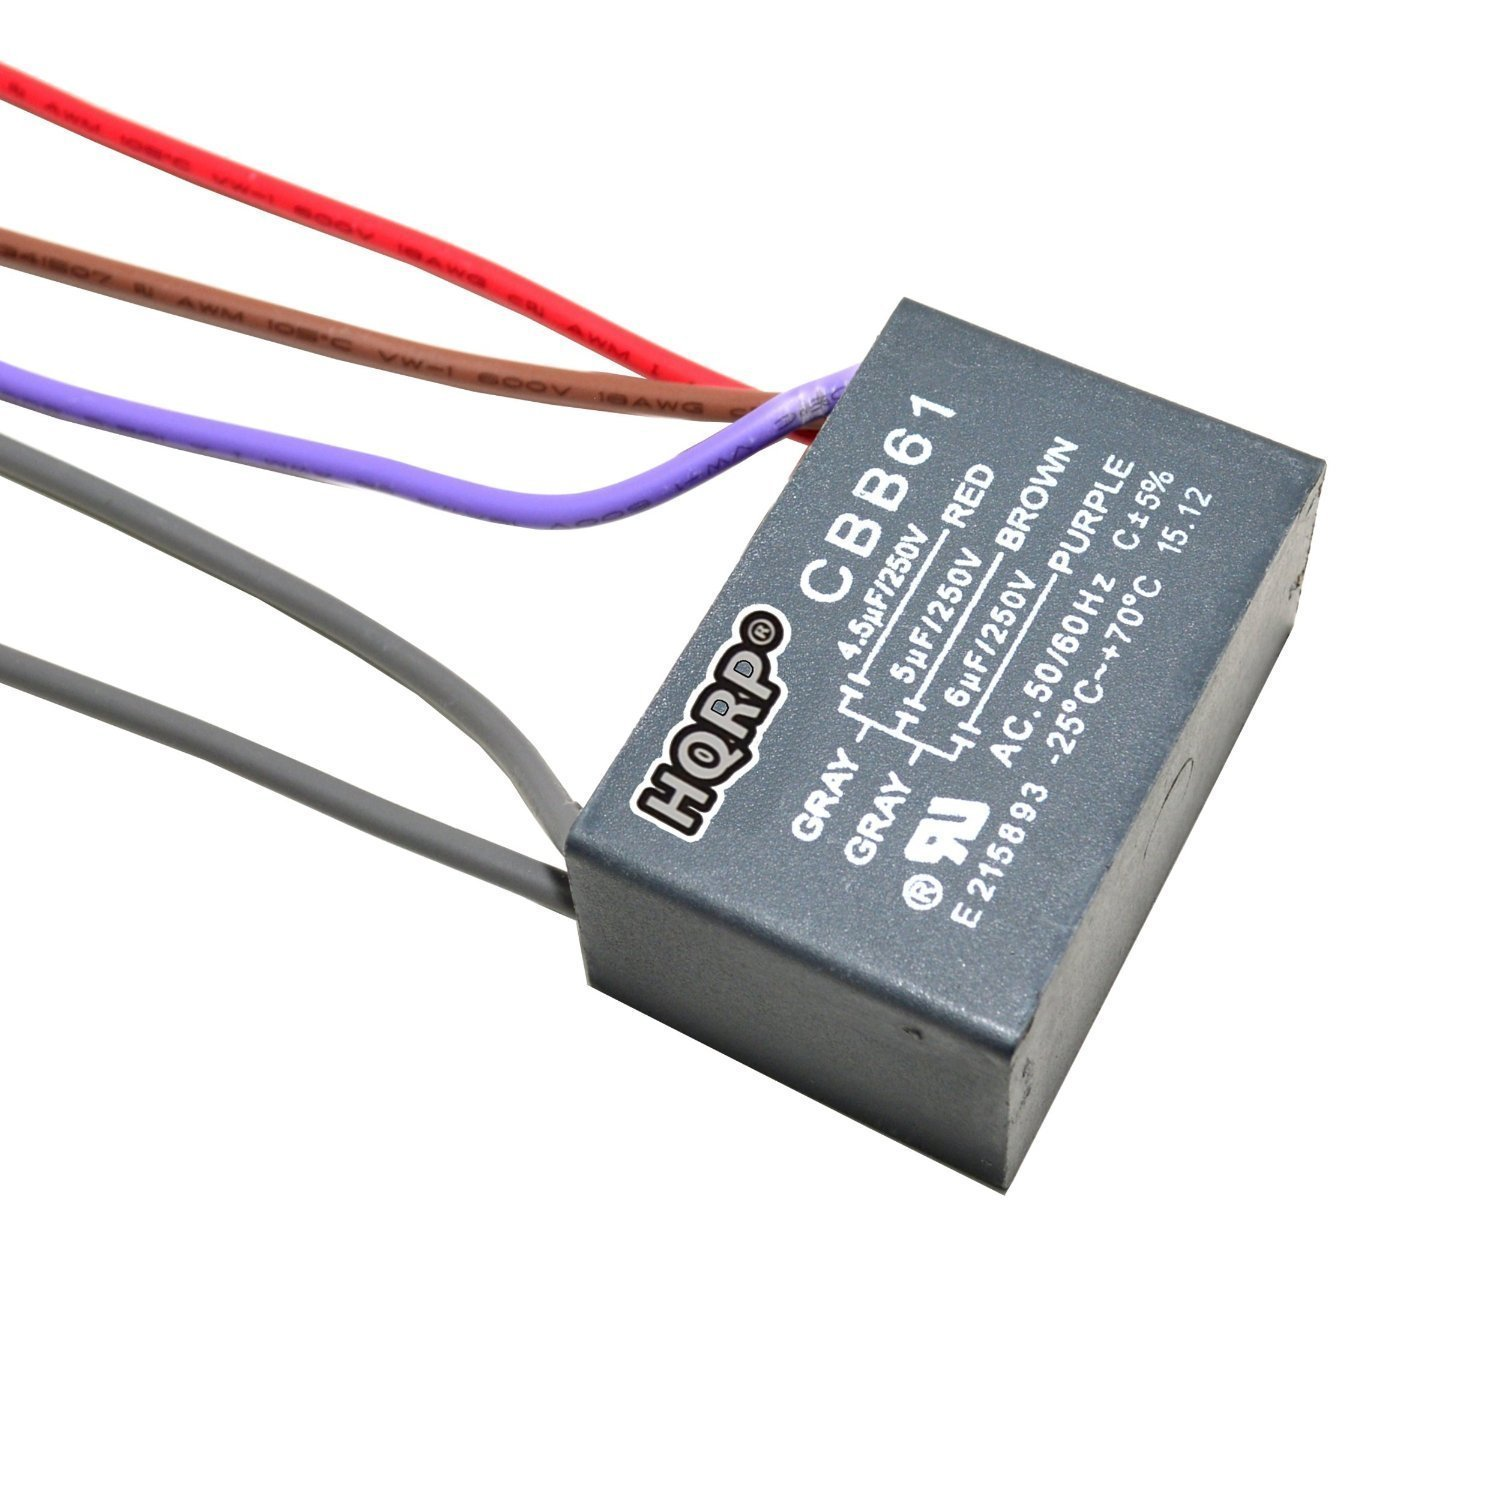 HQRP 5-Wire CBB61 Capacitor for Harbor Breeze Ceiling Fan 4.5uf+5uf+6uf + HQRP Coaster